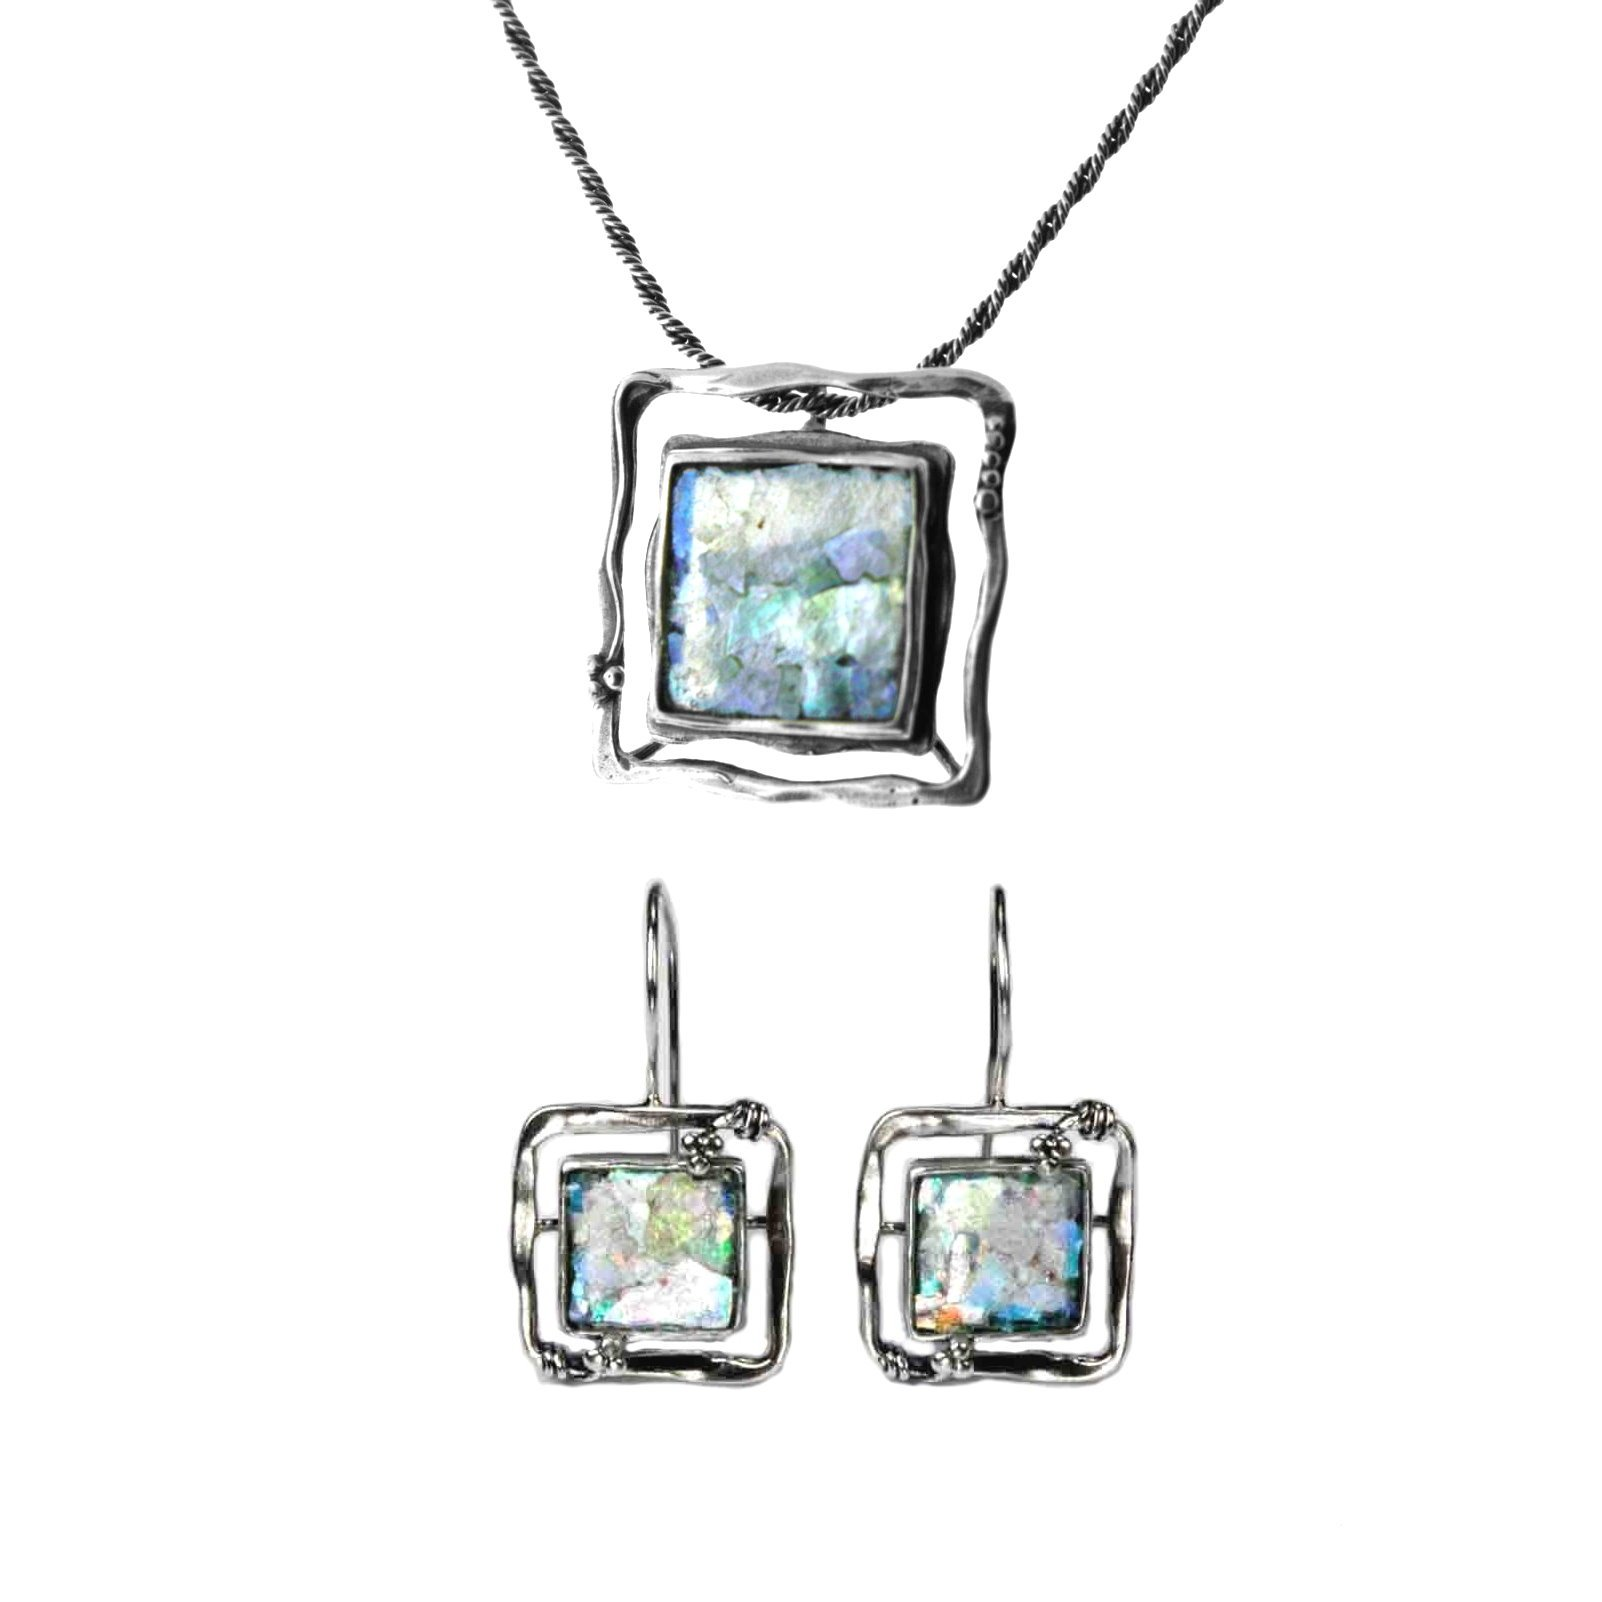 Ancient Roman Glass Earring and Necklace Set Square Frame